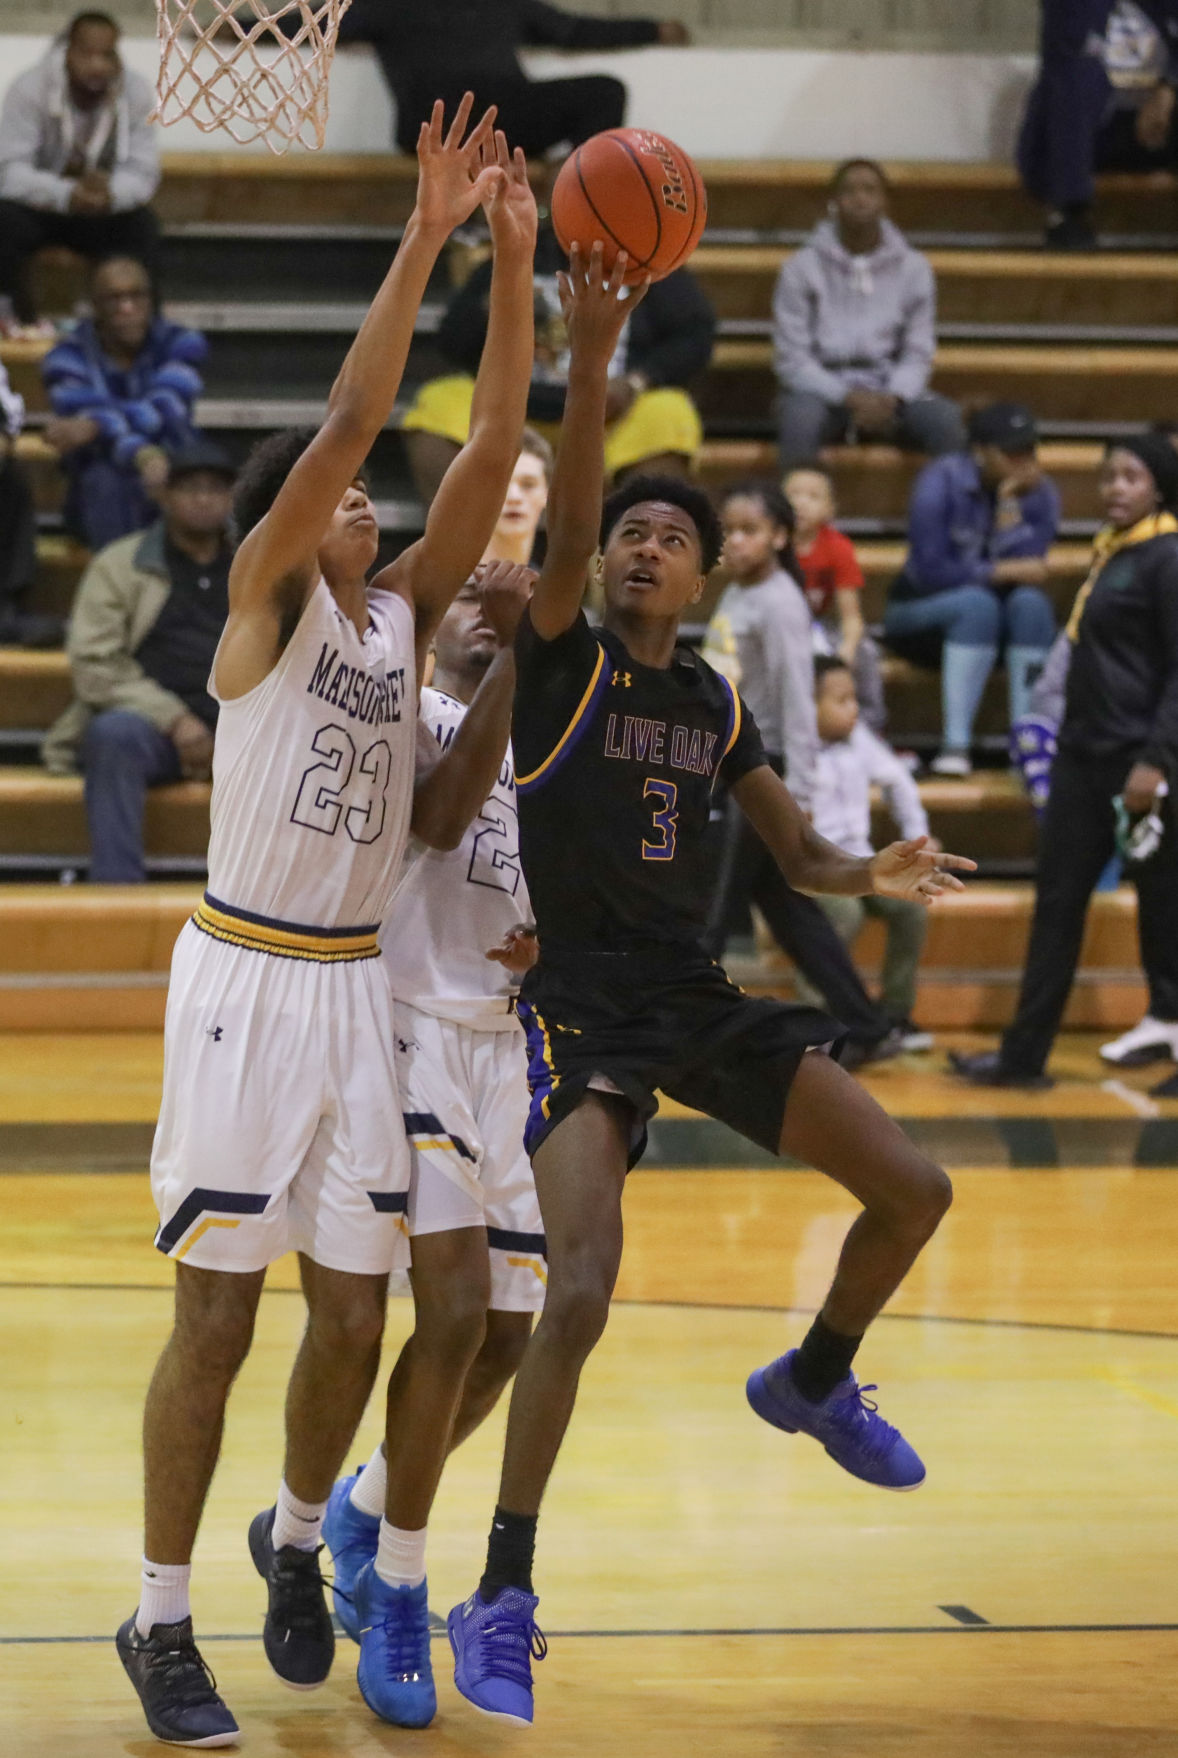 Madison Prep vs Live Oak boys basketball Bryan Bayonne Percy Daniels Jahein Spencer